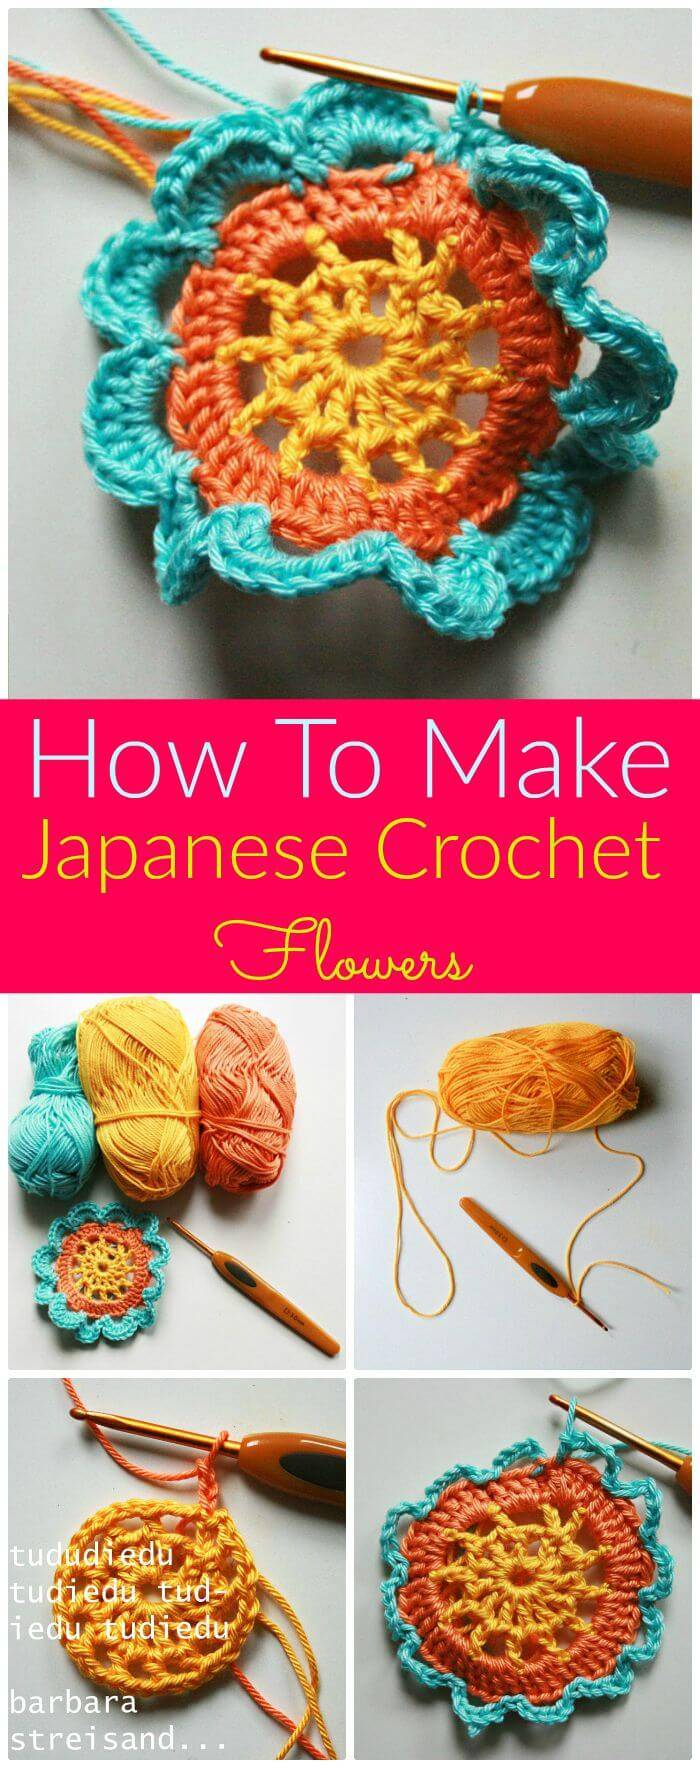 Crochet Flowers 90 Free Crochet Flower Patterns Diy Crafts